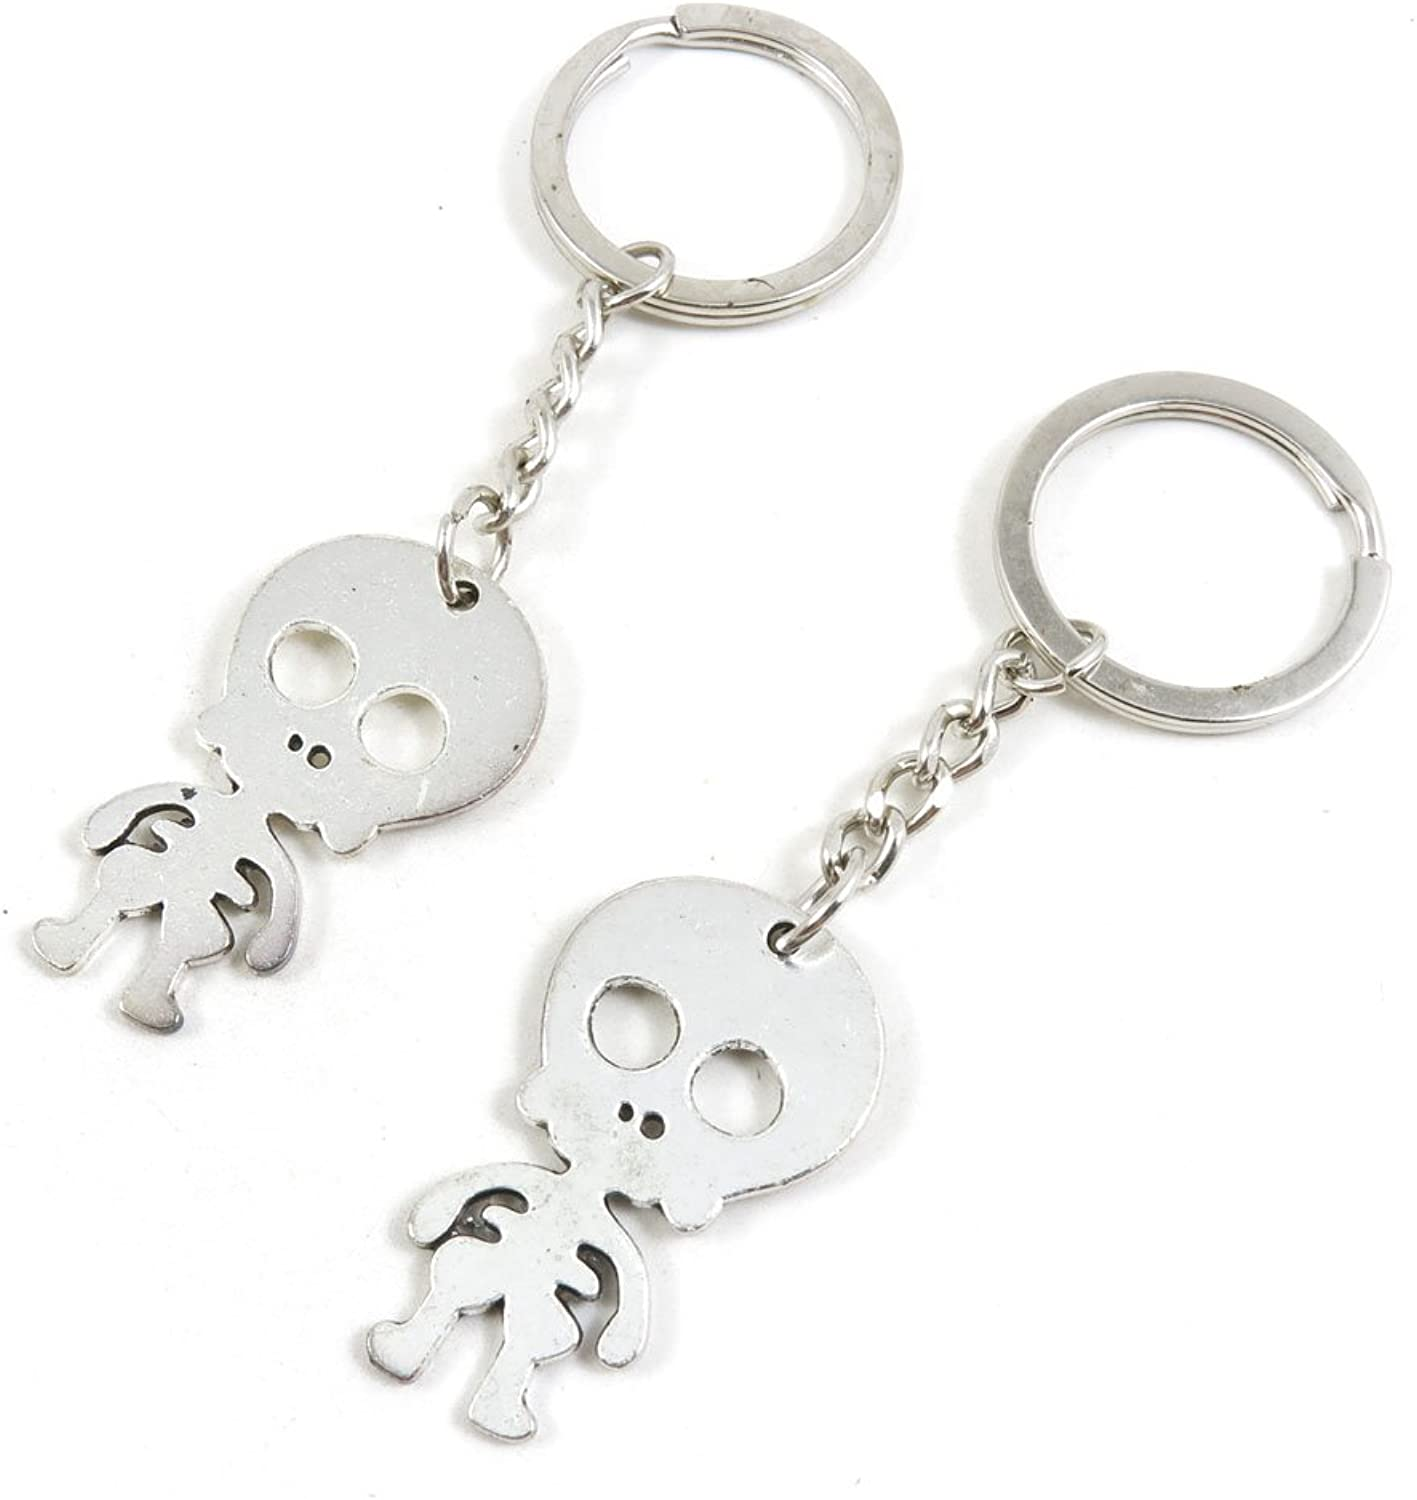 150 Pieces Fashion Jewelry Keyring Keychain Door Car Key Tag Ring Chain Supplier Supply Wholesale Bulk Lots P7YR5 Cute Catoon Skeleton Skull